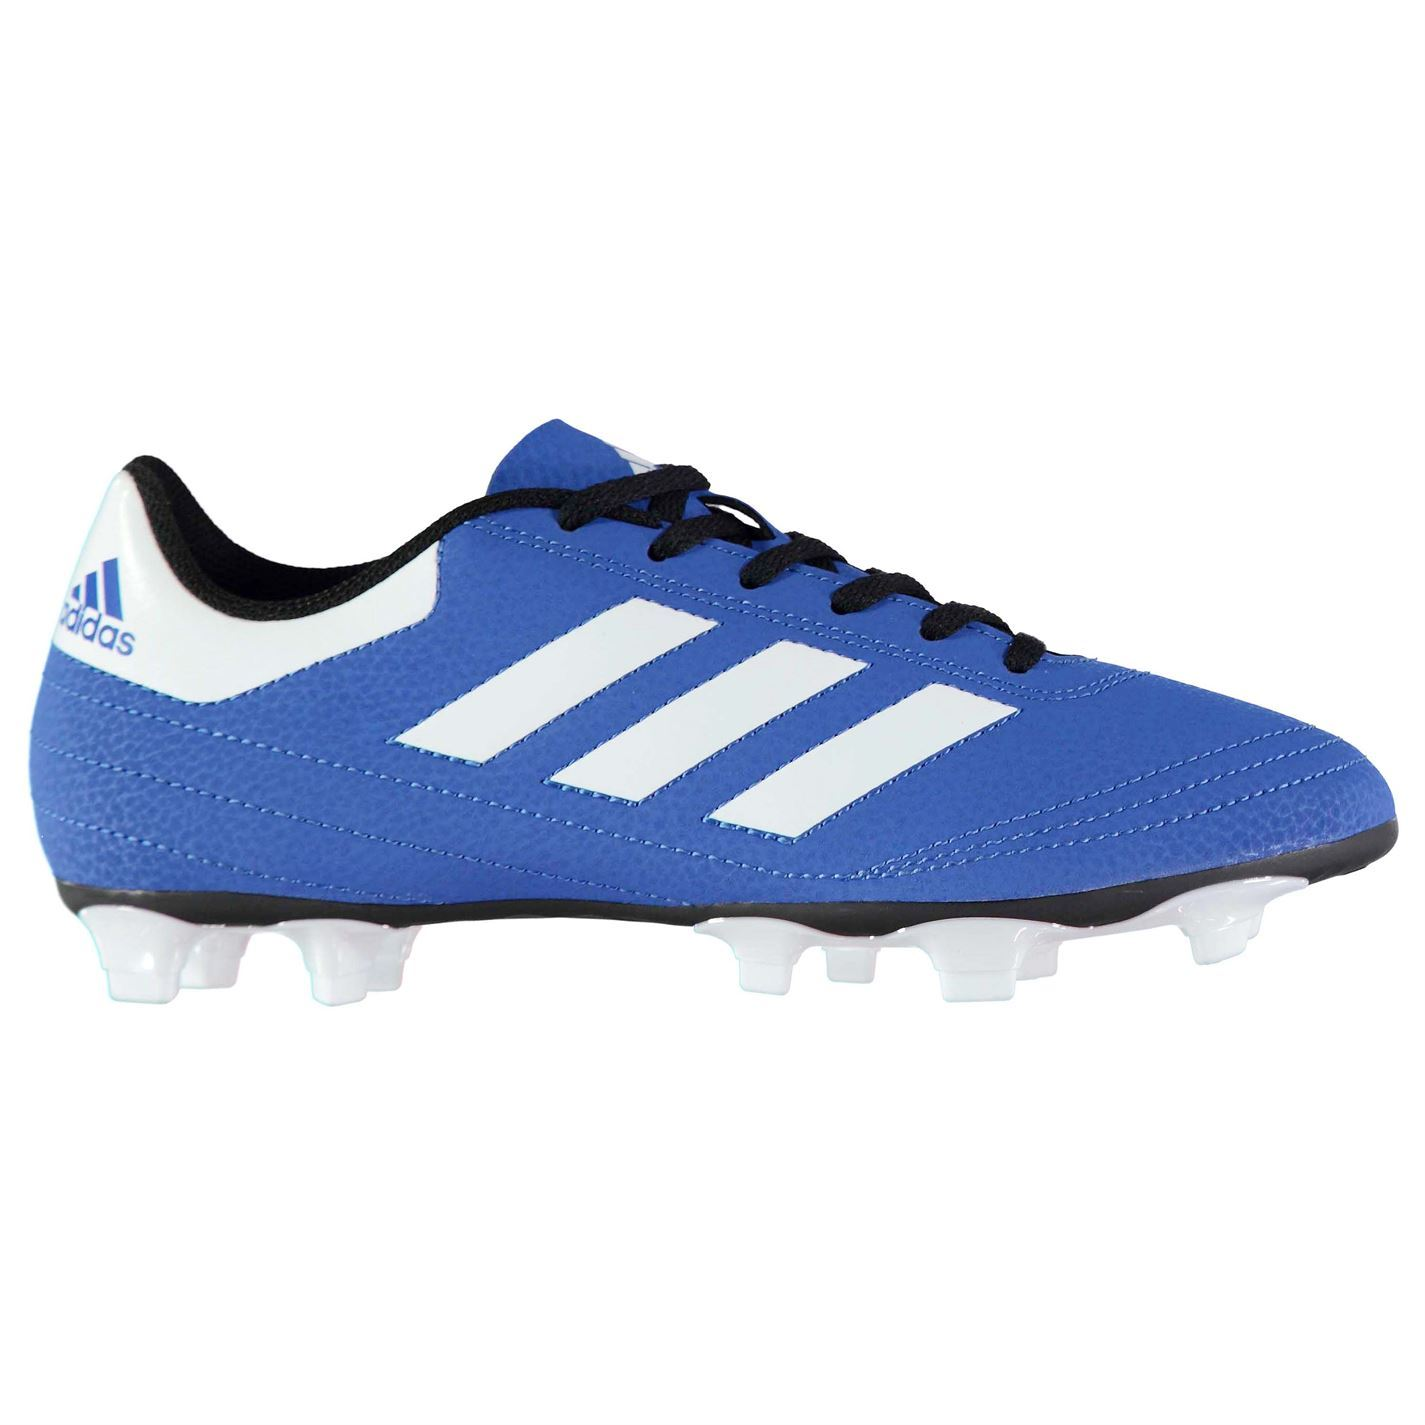 ... adidas Goletto FG Firm Ground Football Boots Mens Blue White Soccer  Cleats Shoes ... 6ae35bb2ad6c